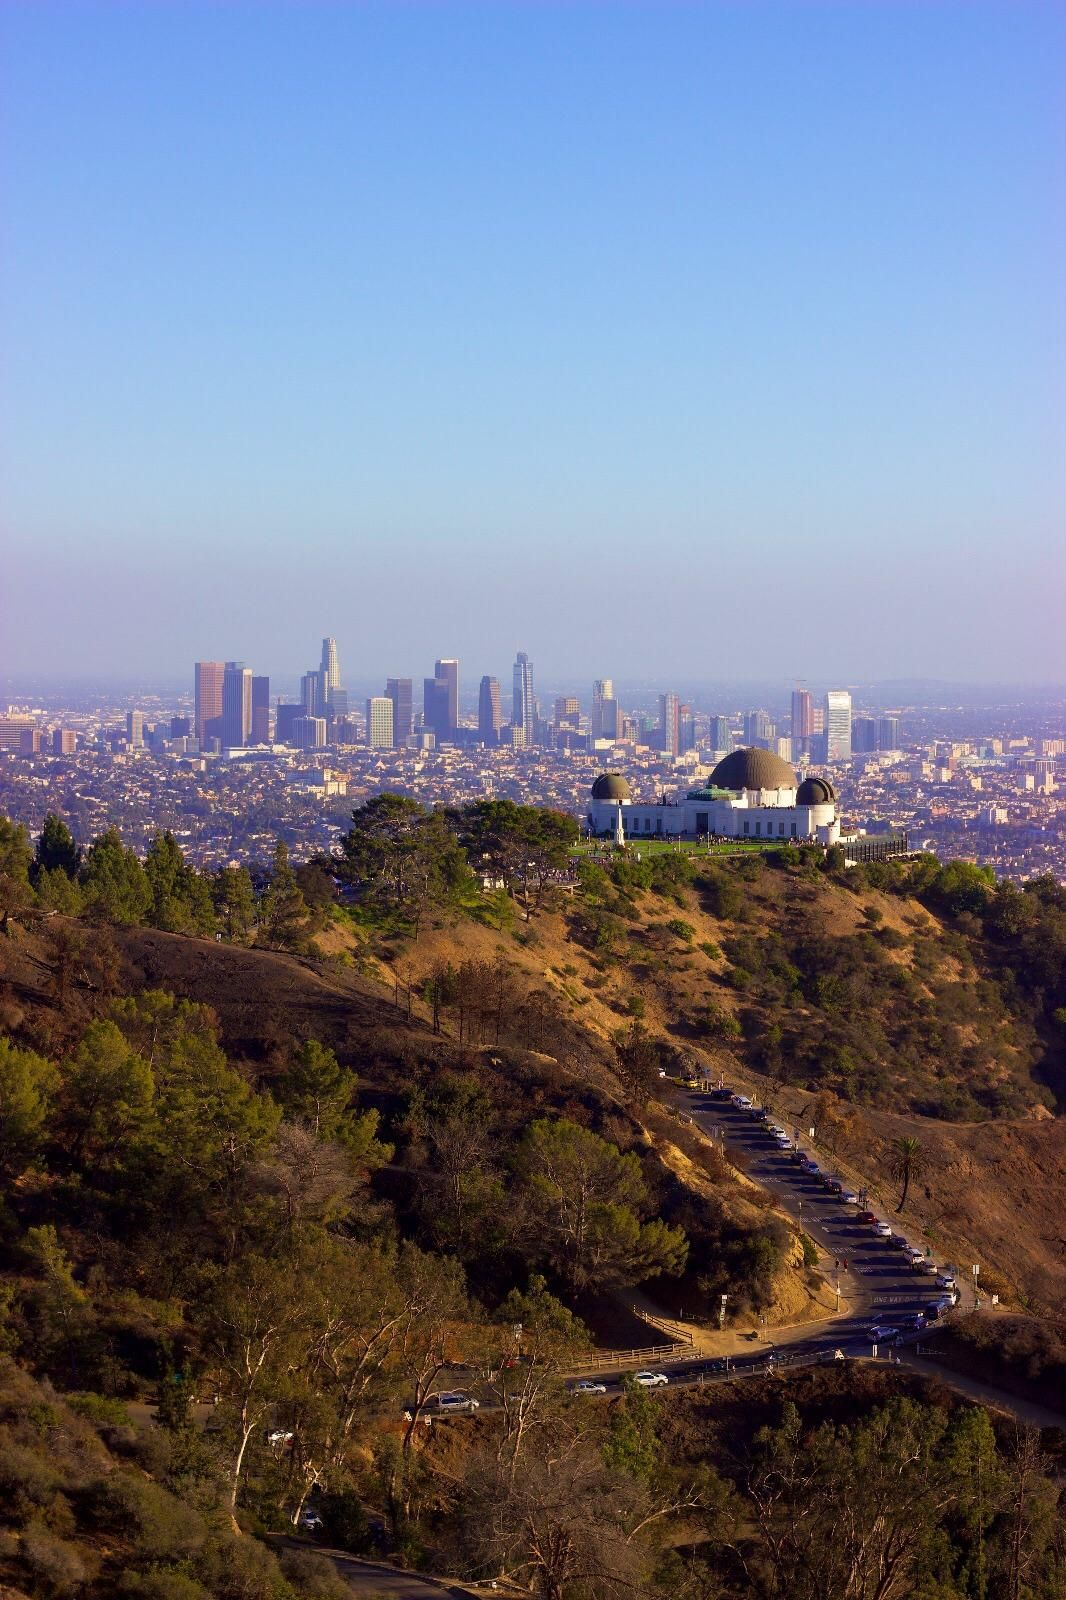 La Skyline From The Hollywood Sign Including Griffith Observatory From October 2018 Los Angeles California Photography California Travel Los Angeles Travel